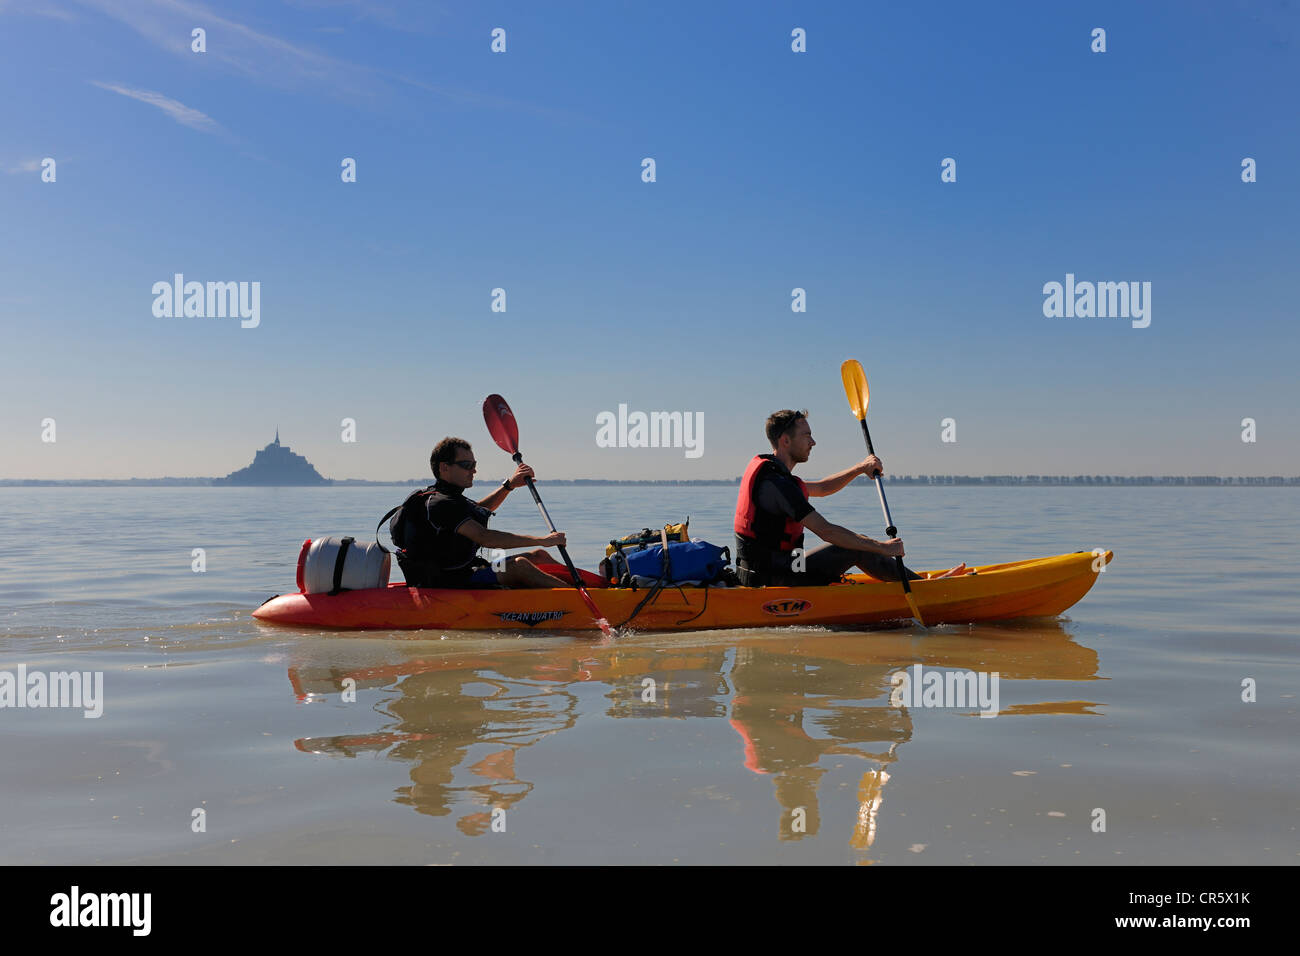 France, Manche, crossing the Bay of Mont Saint Michel in kayak - Stock Image